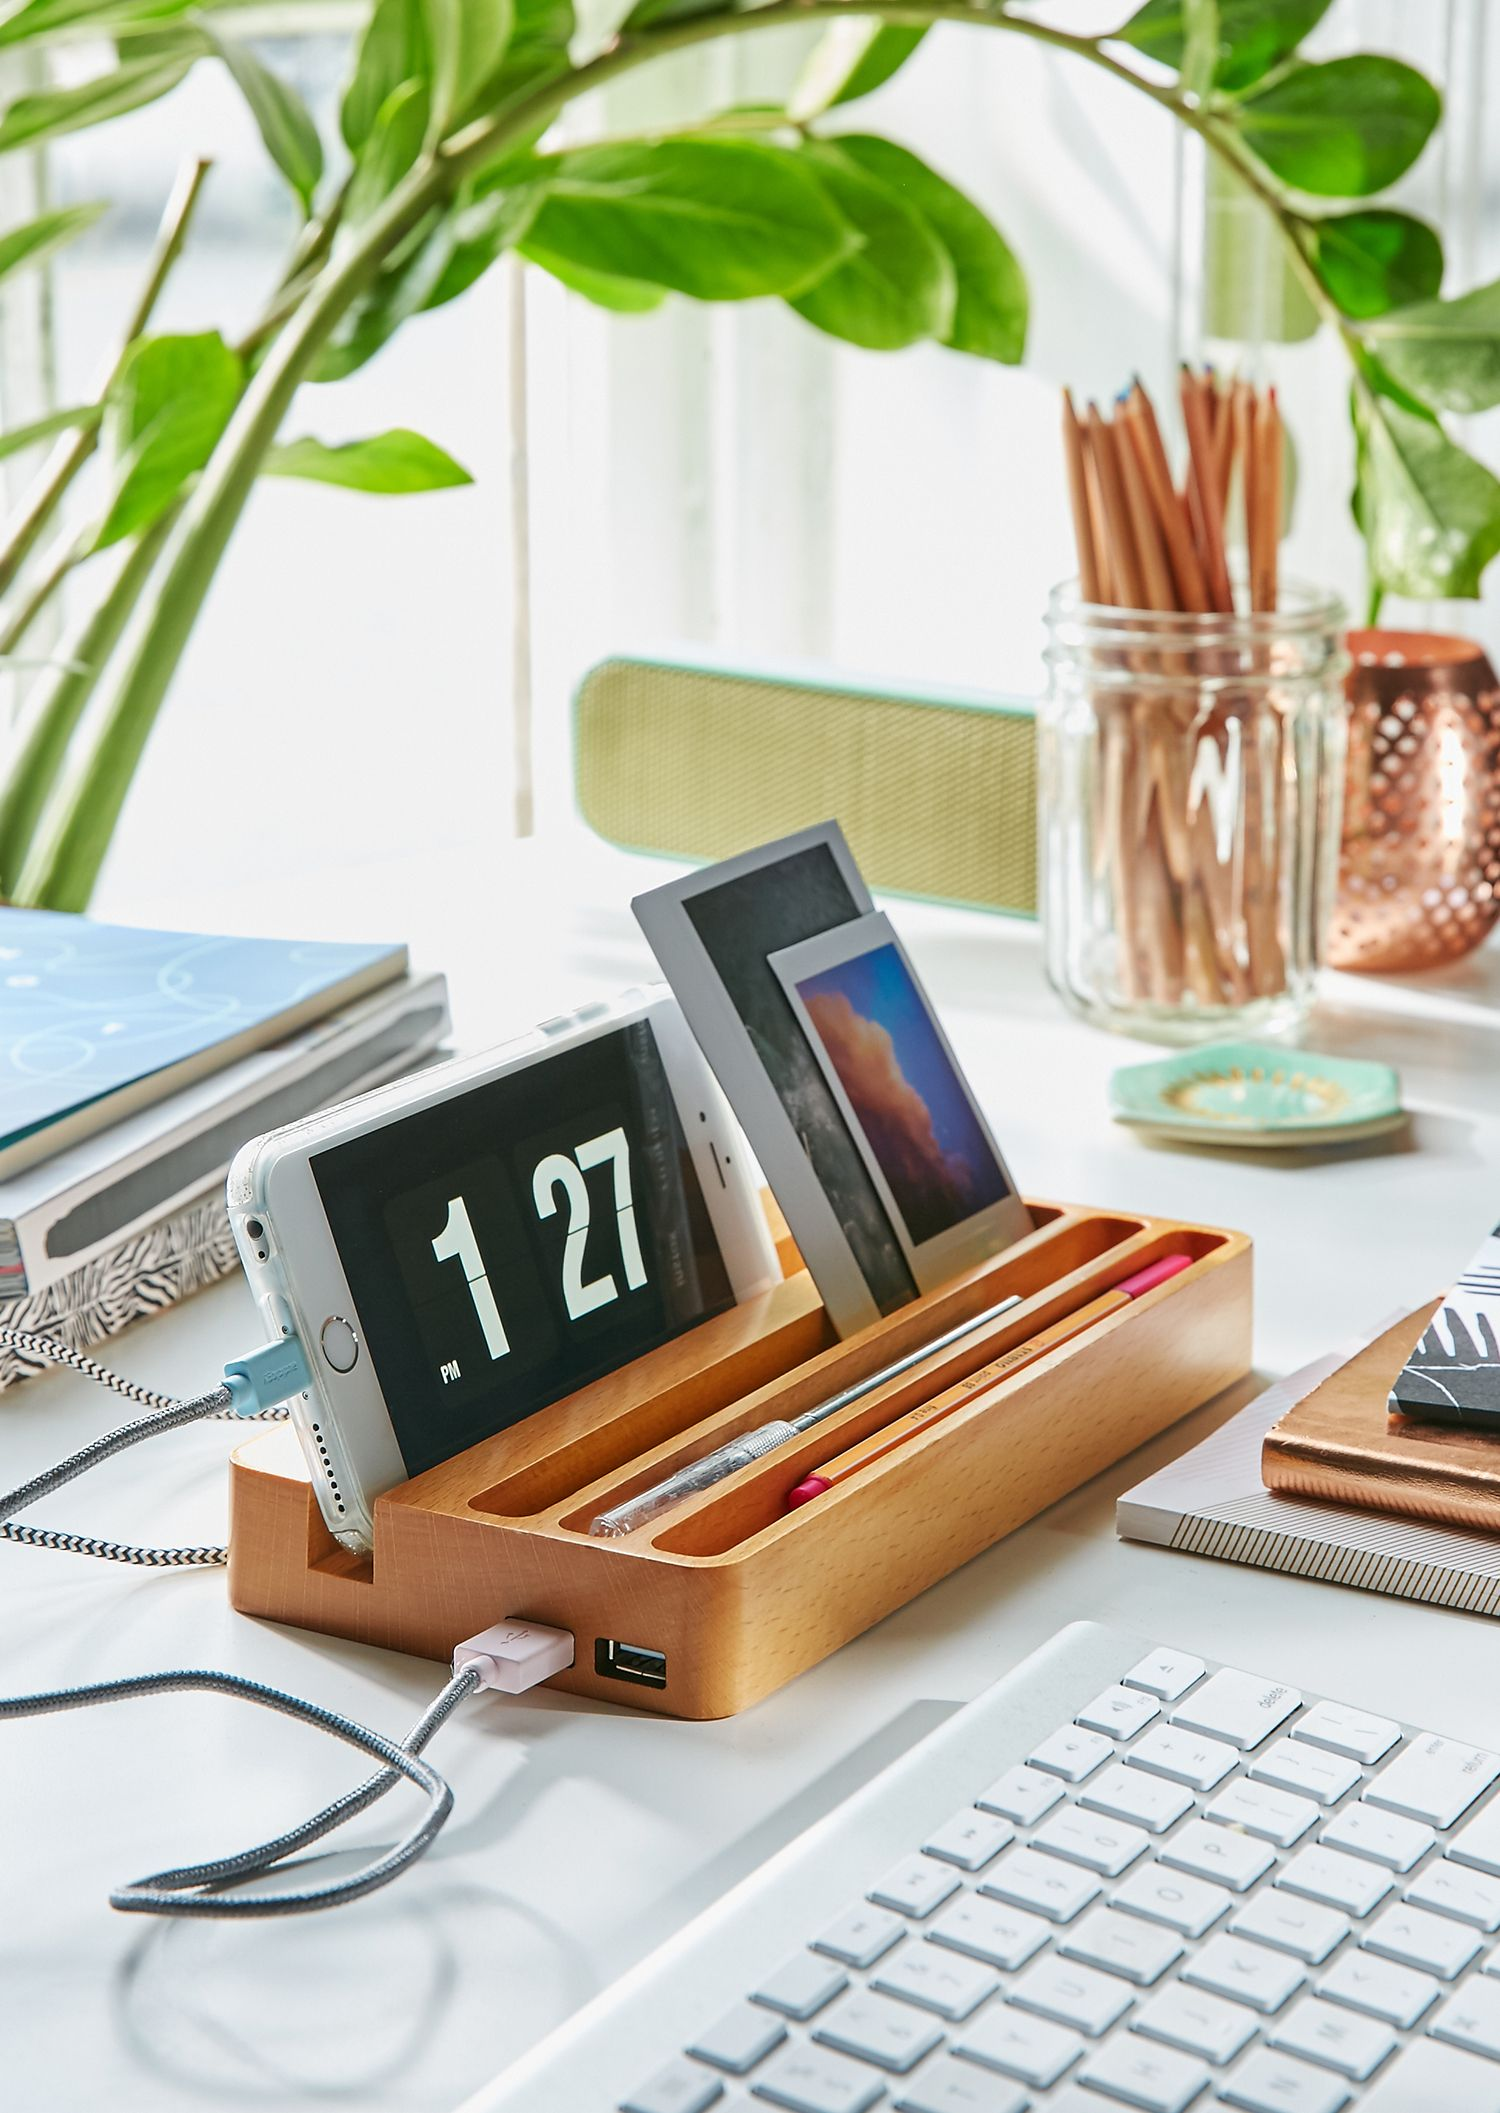 30+ Fun & Creative DIY Desk Organizer Ideas to Make Your ...